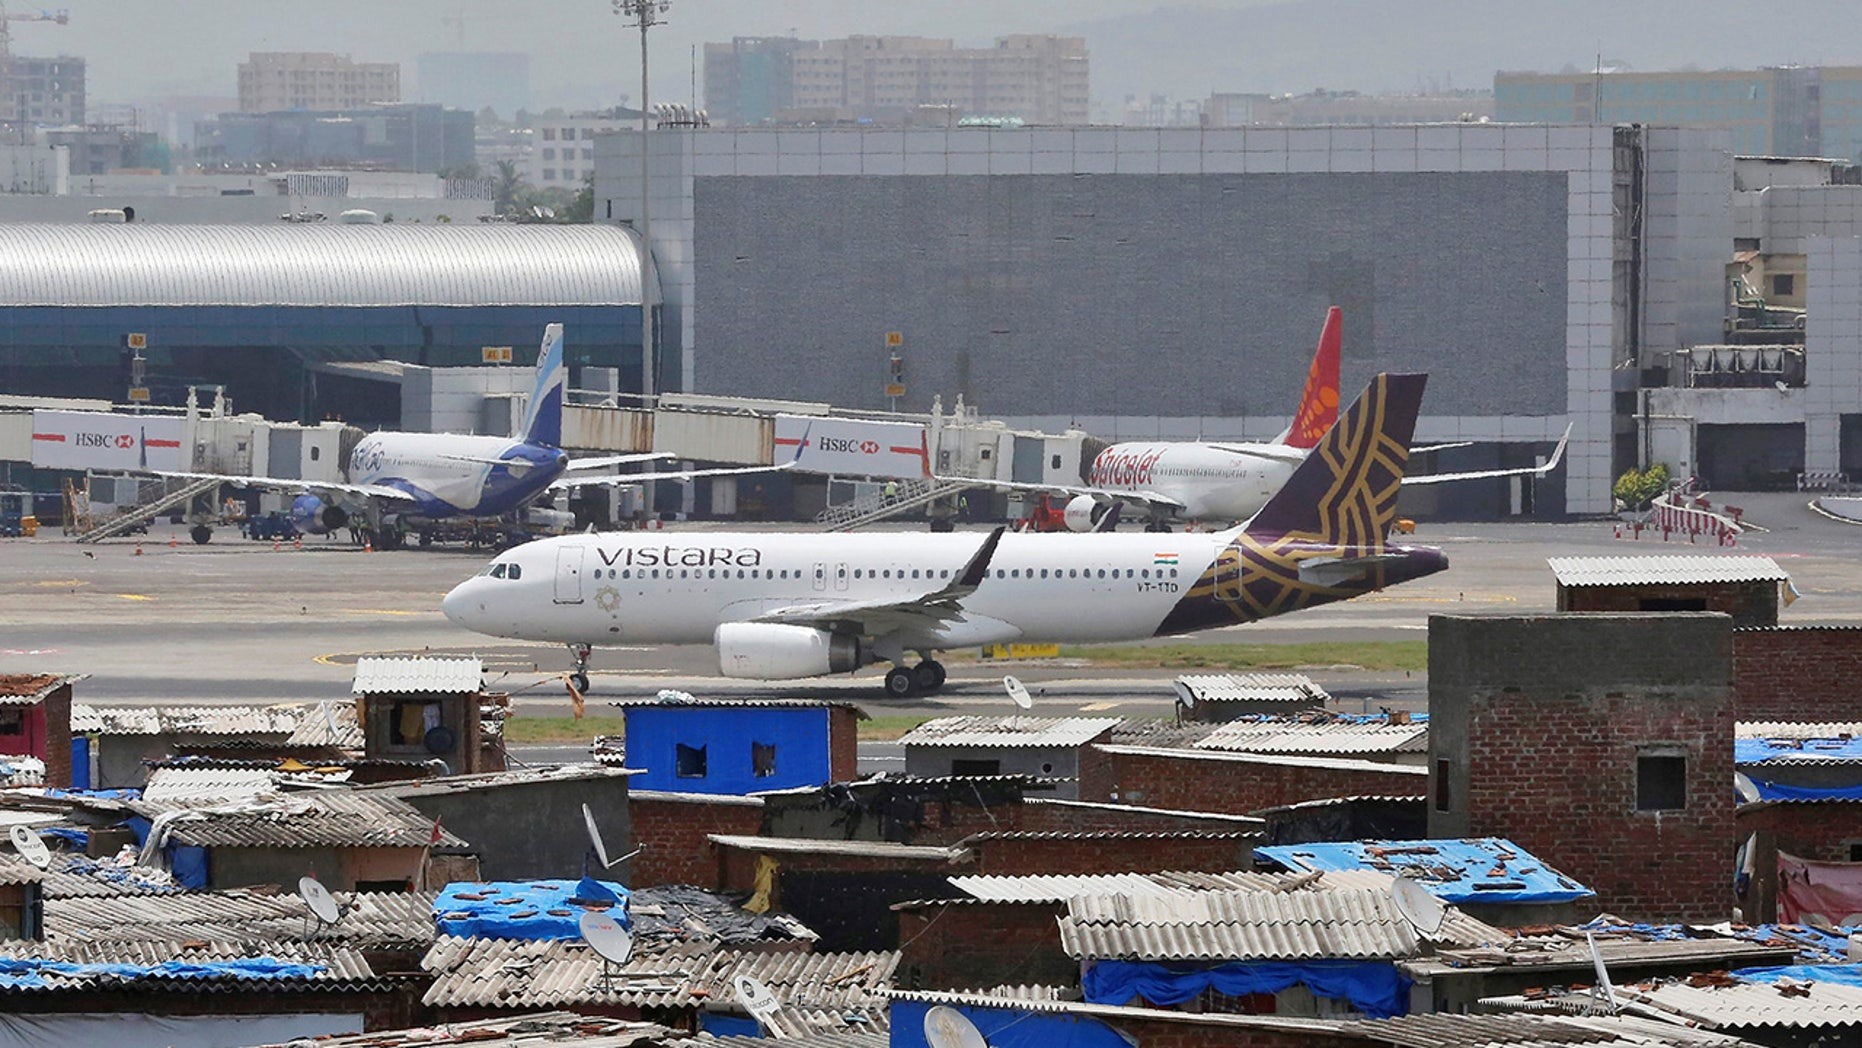 According to the New Indian Express, Vistara flight UK 707 was preparing to depart from Indira Gandhi International Airport in Delhi to Netaji Subhas Chandra Bose International Airport in Kolkata when the incident occurred.